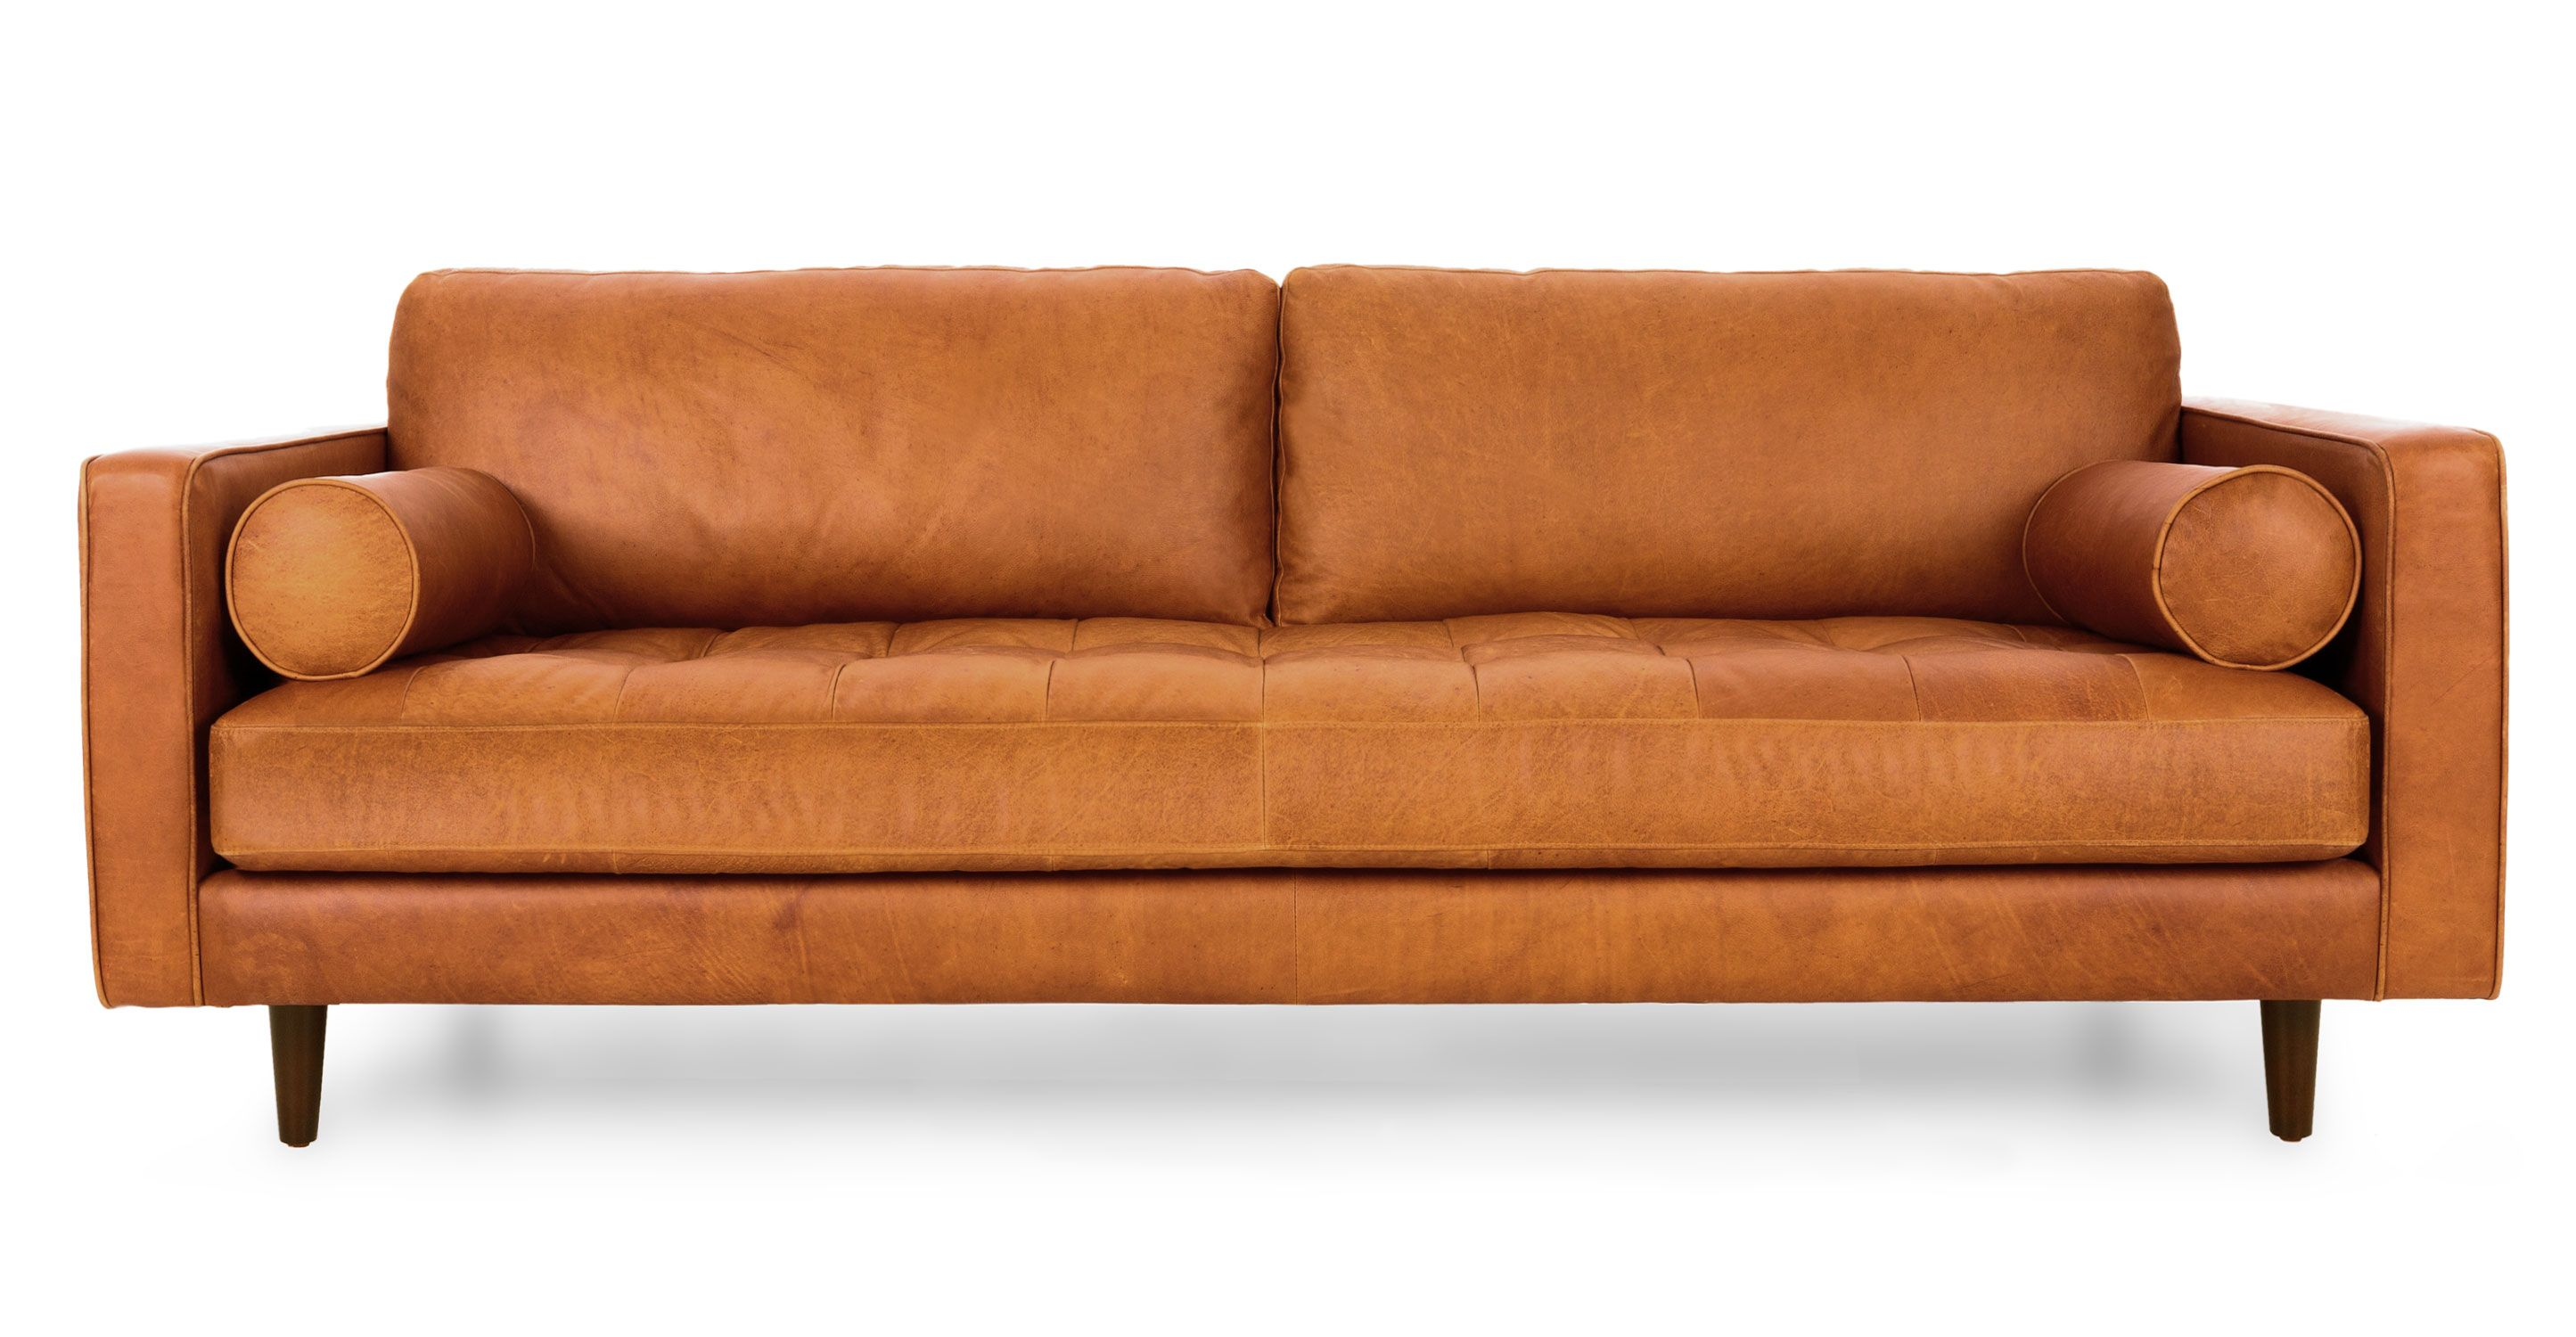 Best Sven Charme Tan Sofa Tan Sofa Scandinavian Furniture 400 x 300